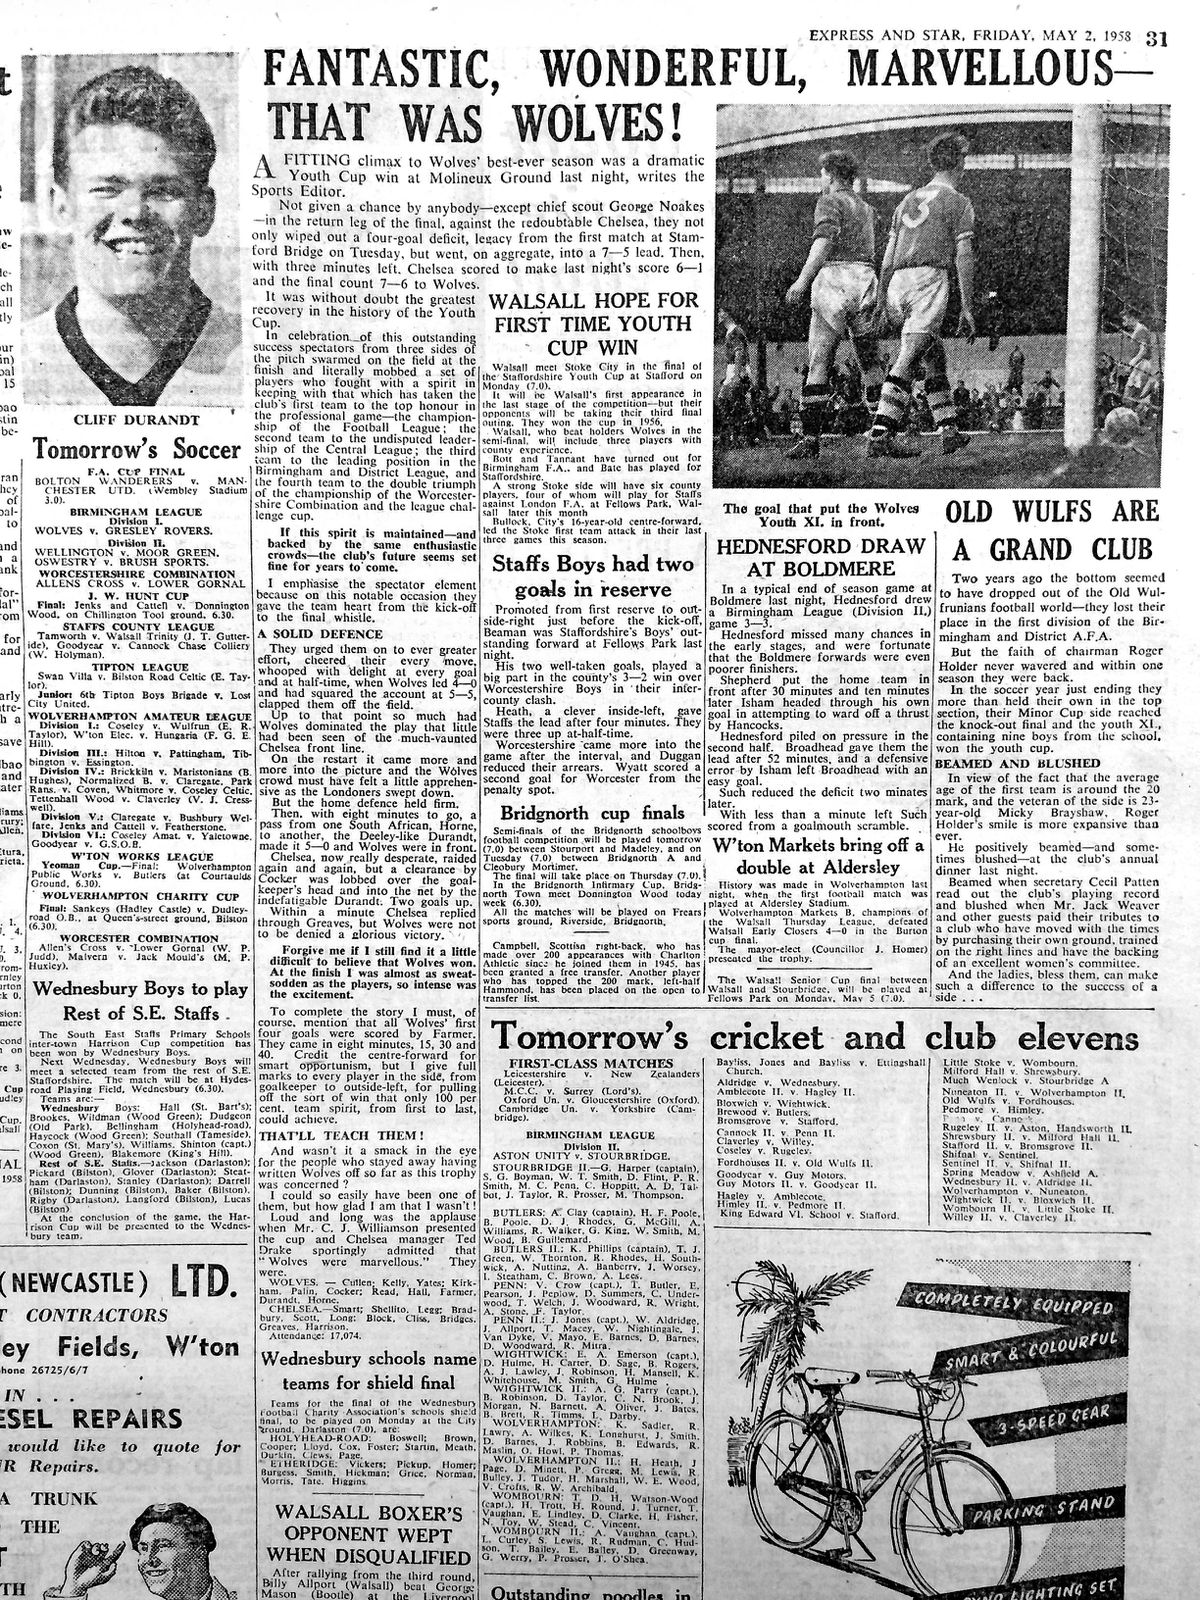 From the Express & Star archives: The Express & Star match report on the cup final